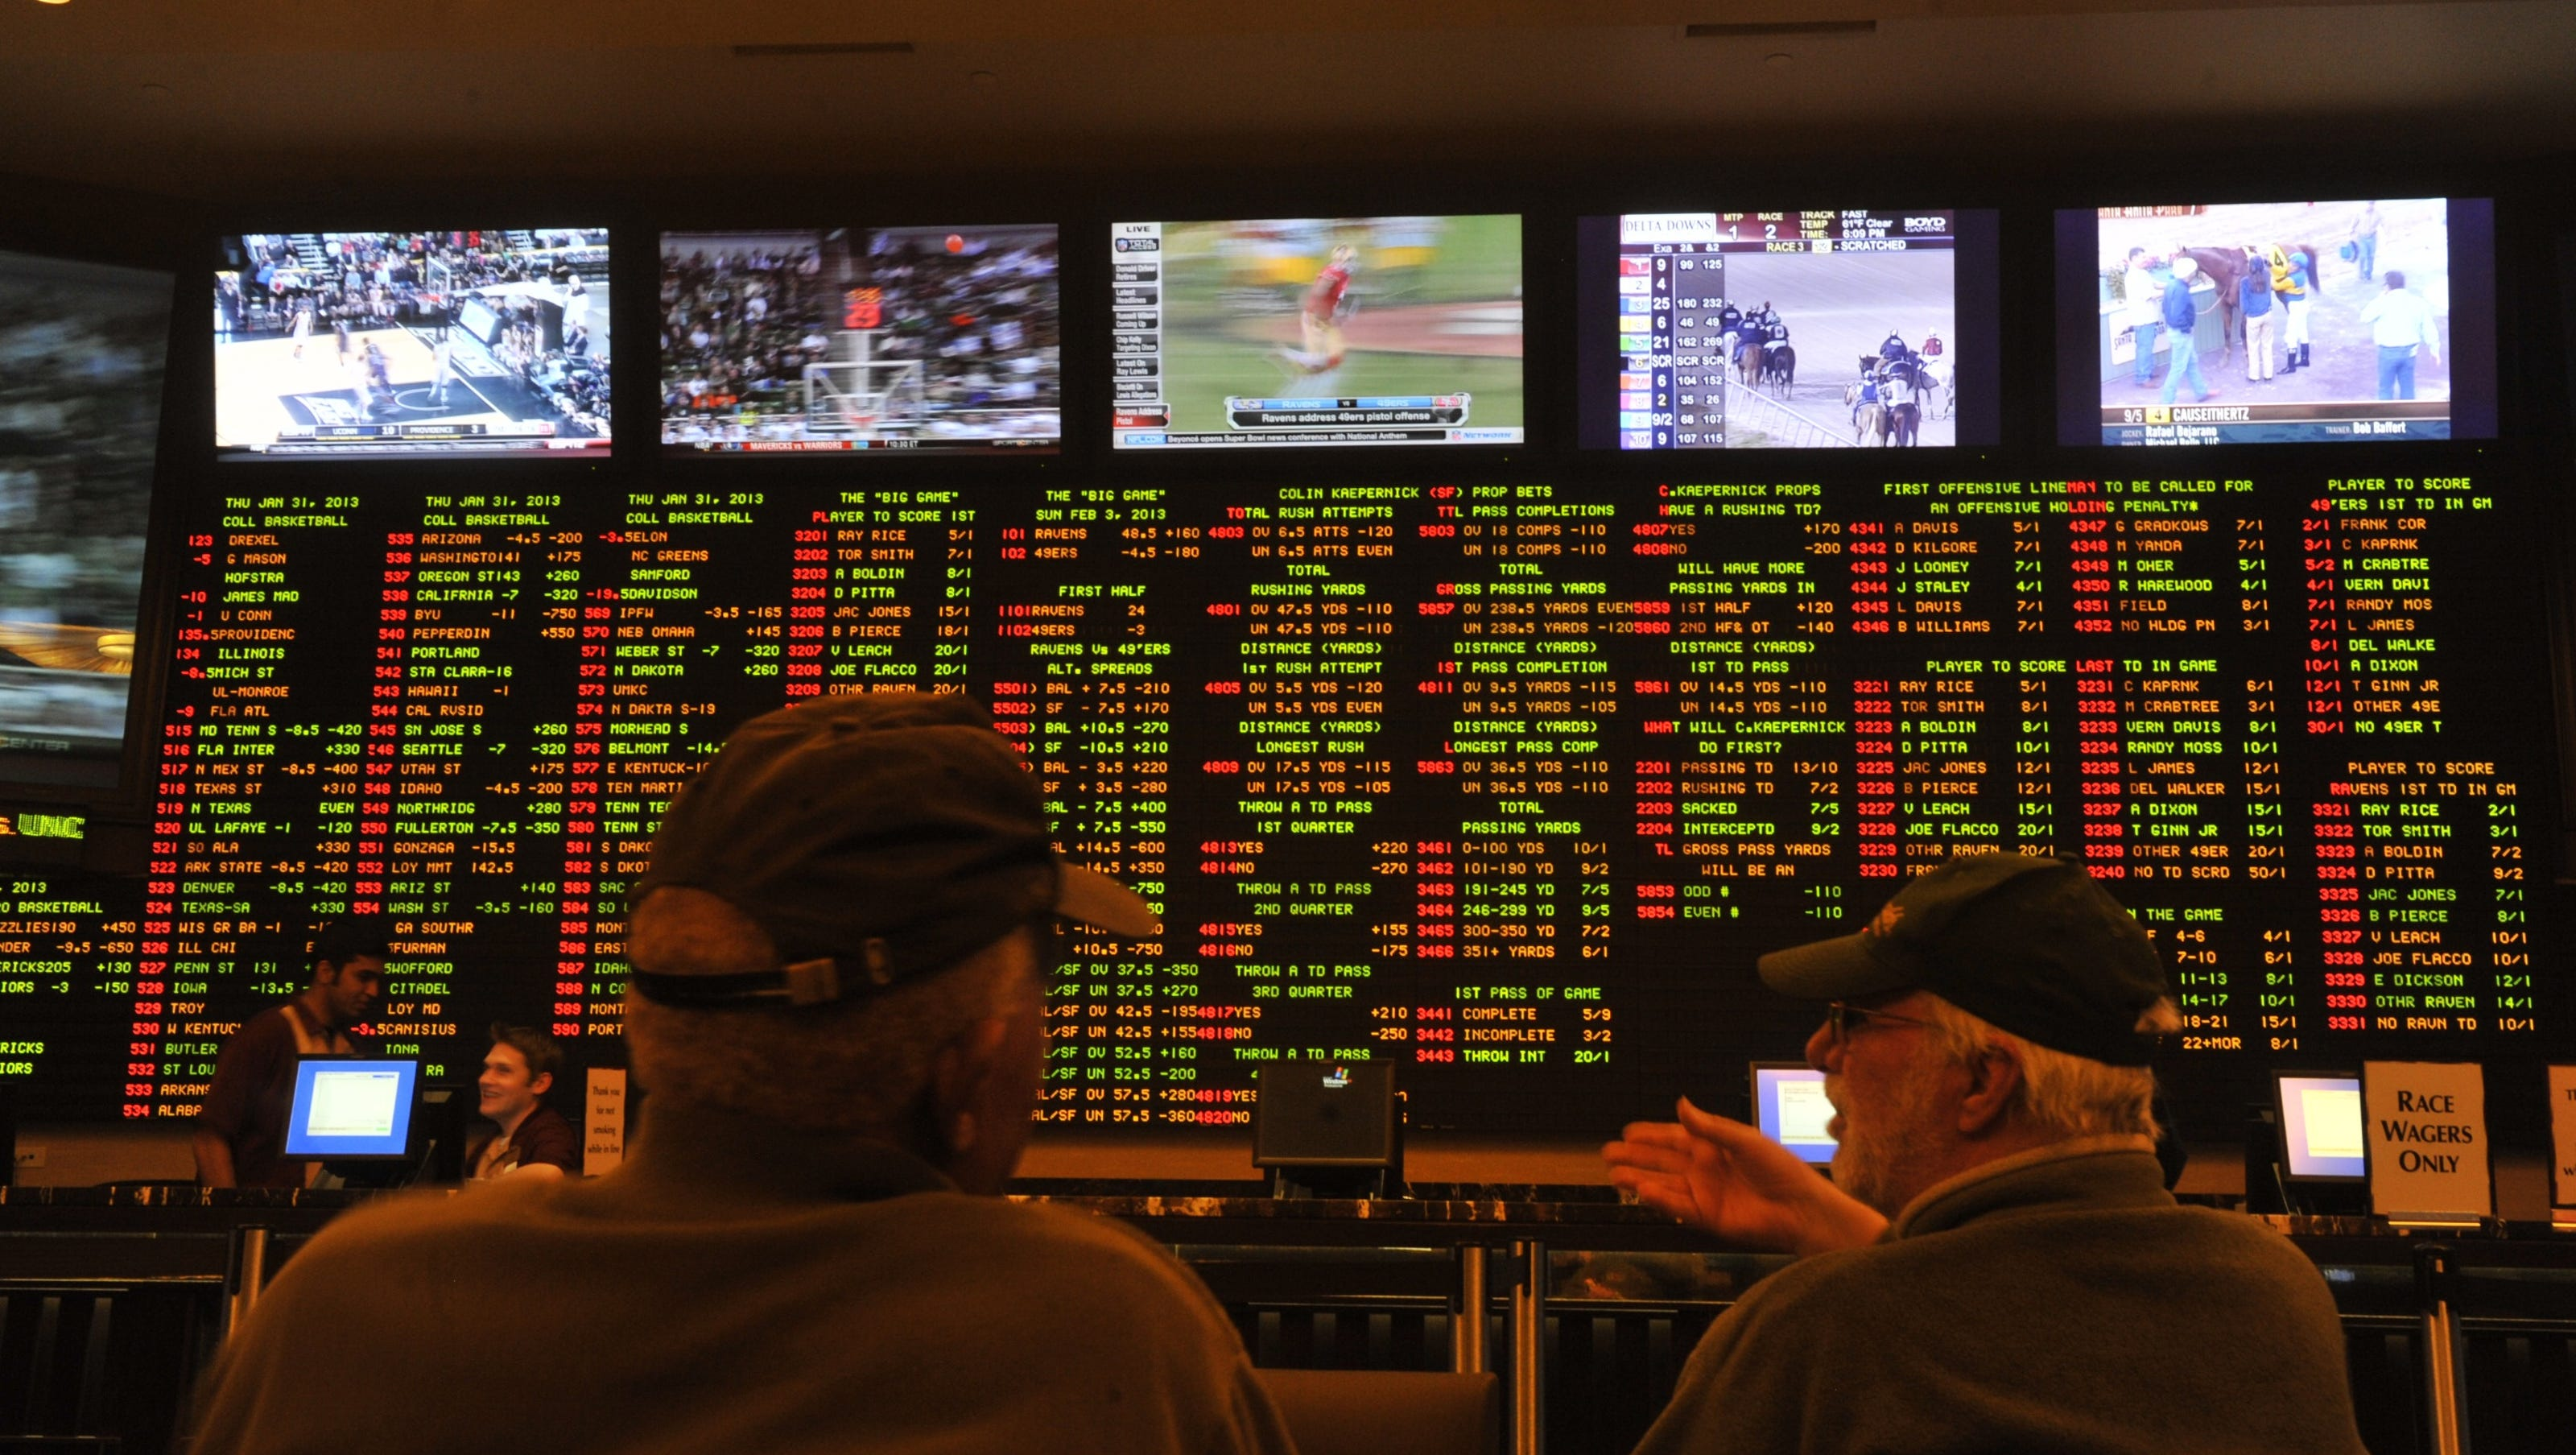 Nj sports gambling websites